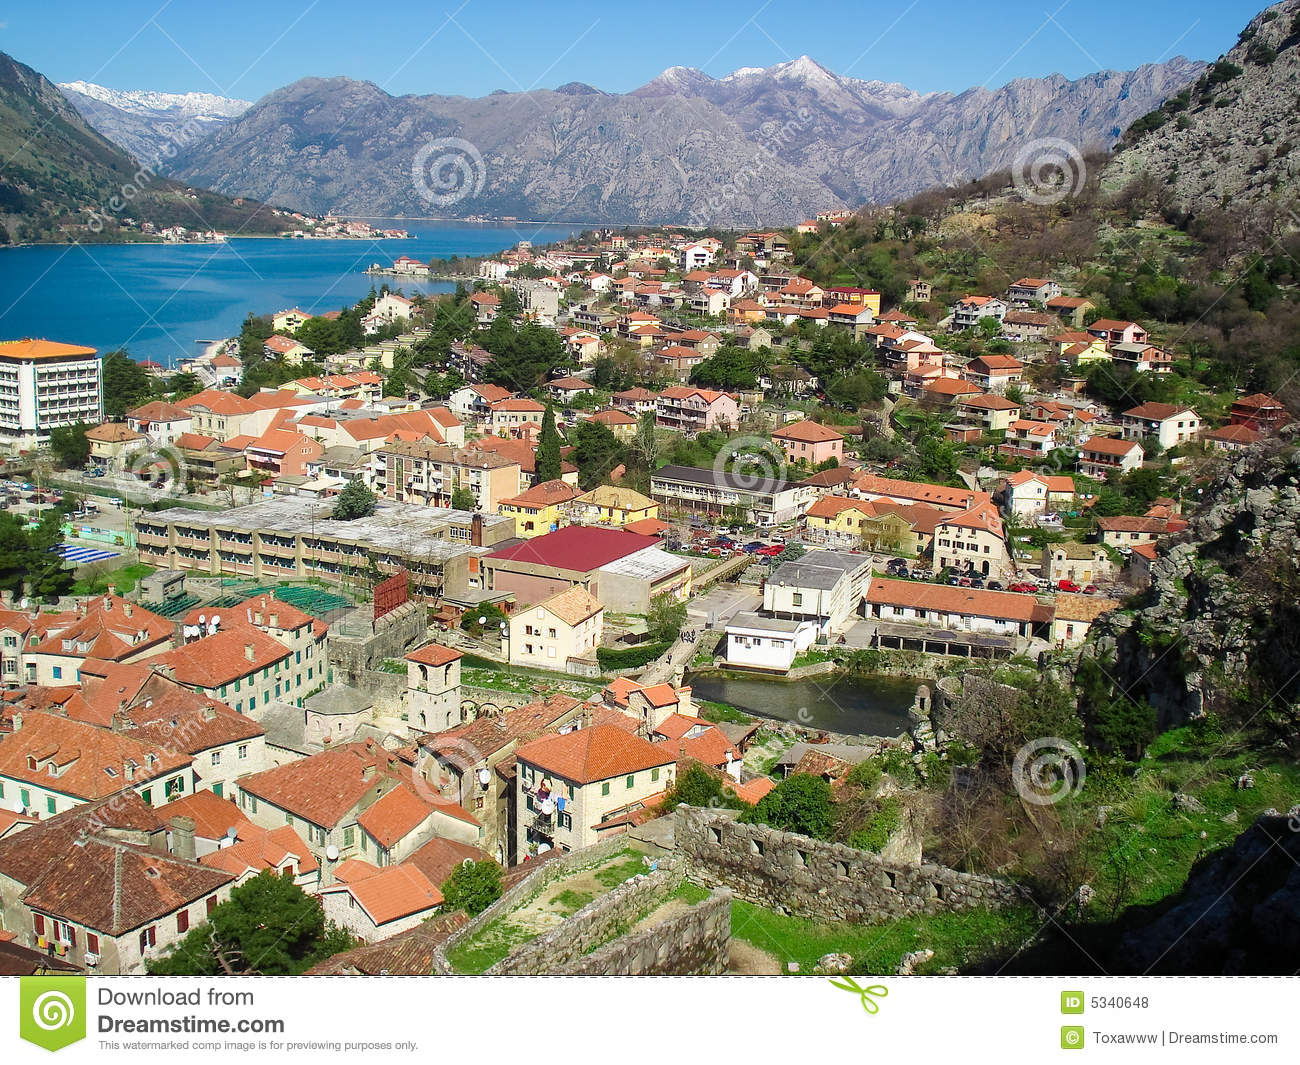 Kotor royalty free stock photos image 5340648 for Hotel design kotor